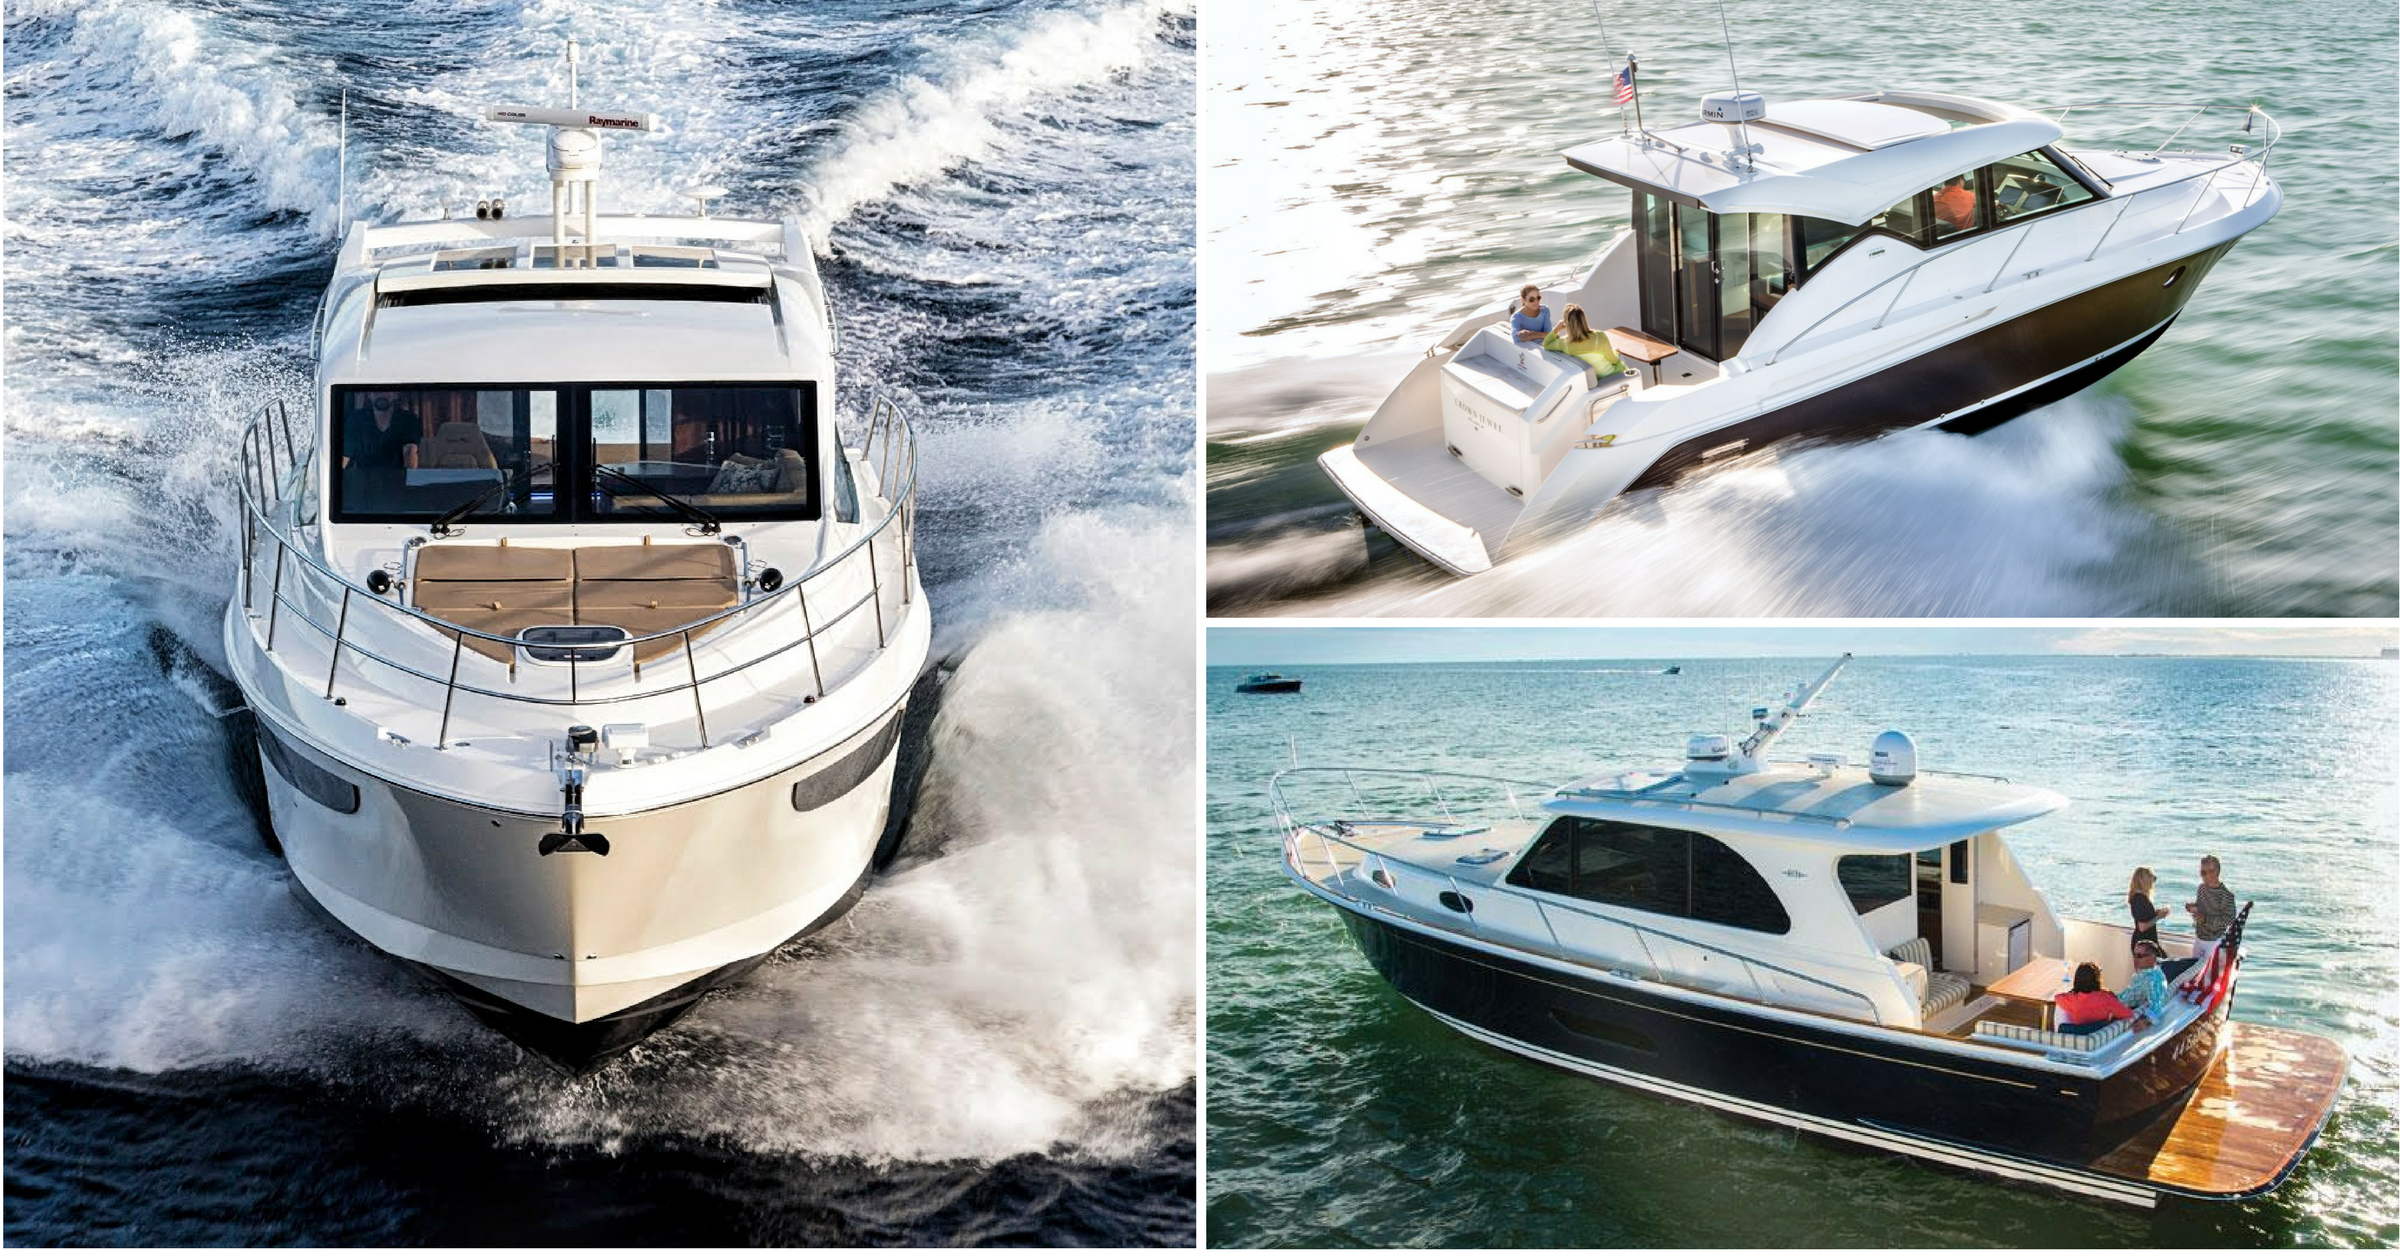 Top 5 Most Popular Powerboat Makes from Dockwa's Boaters [Infographic]